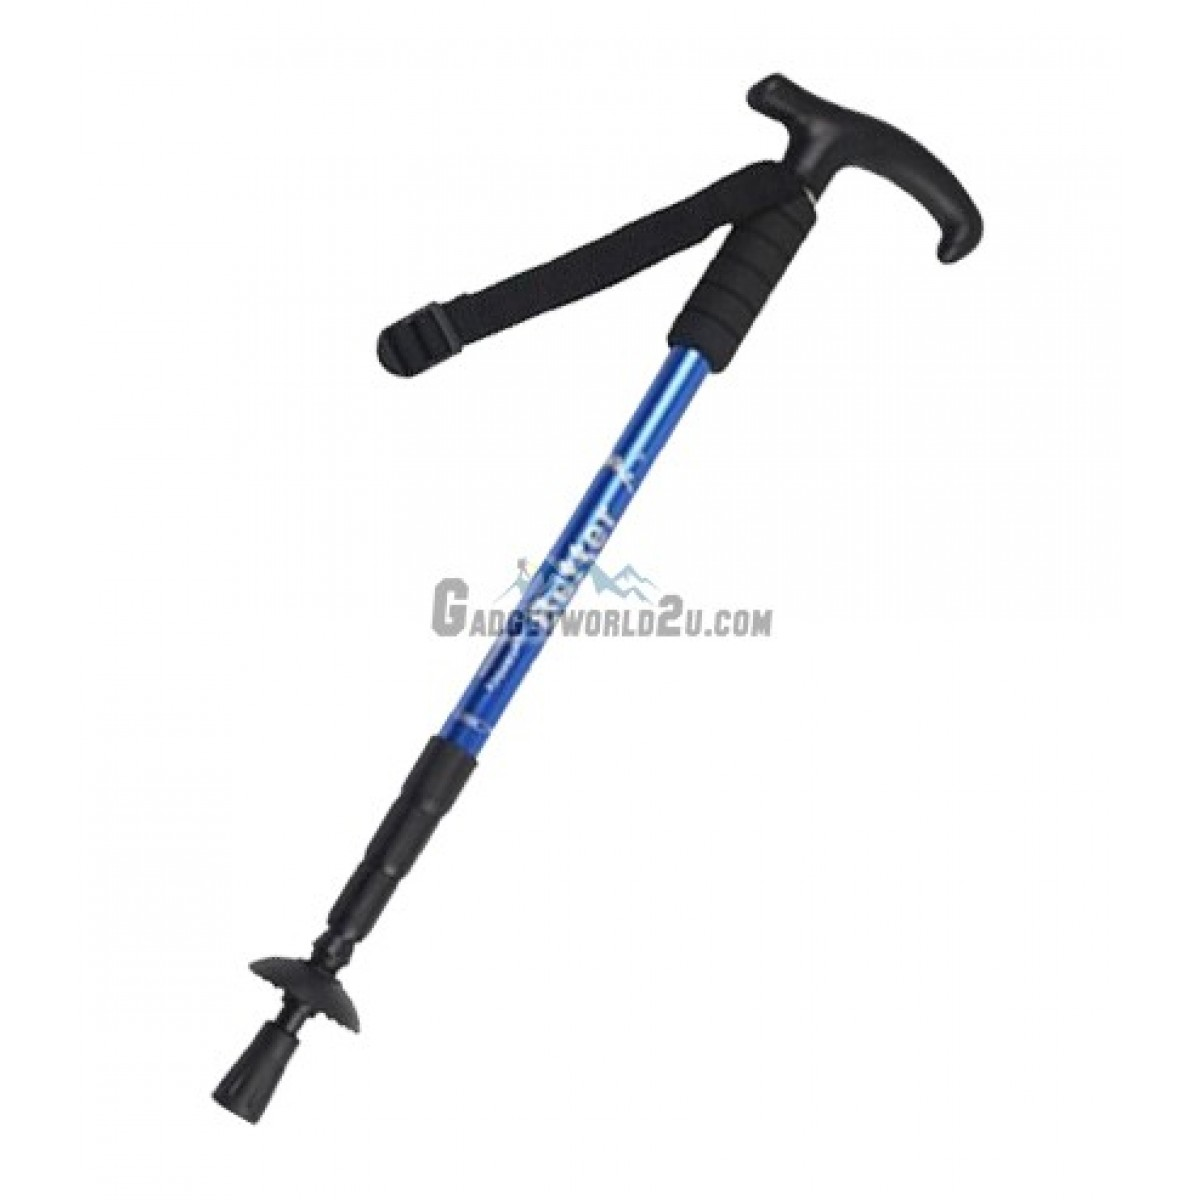 Hiking Stick Retractable with Anti Shock - Blue